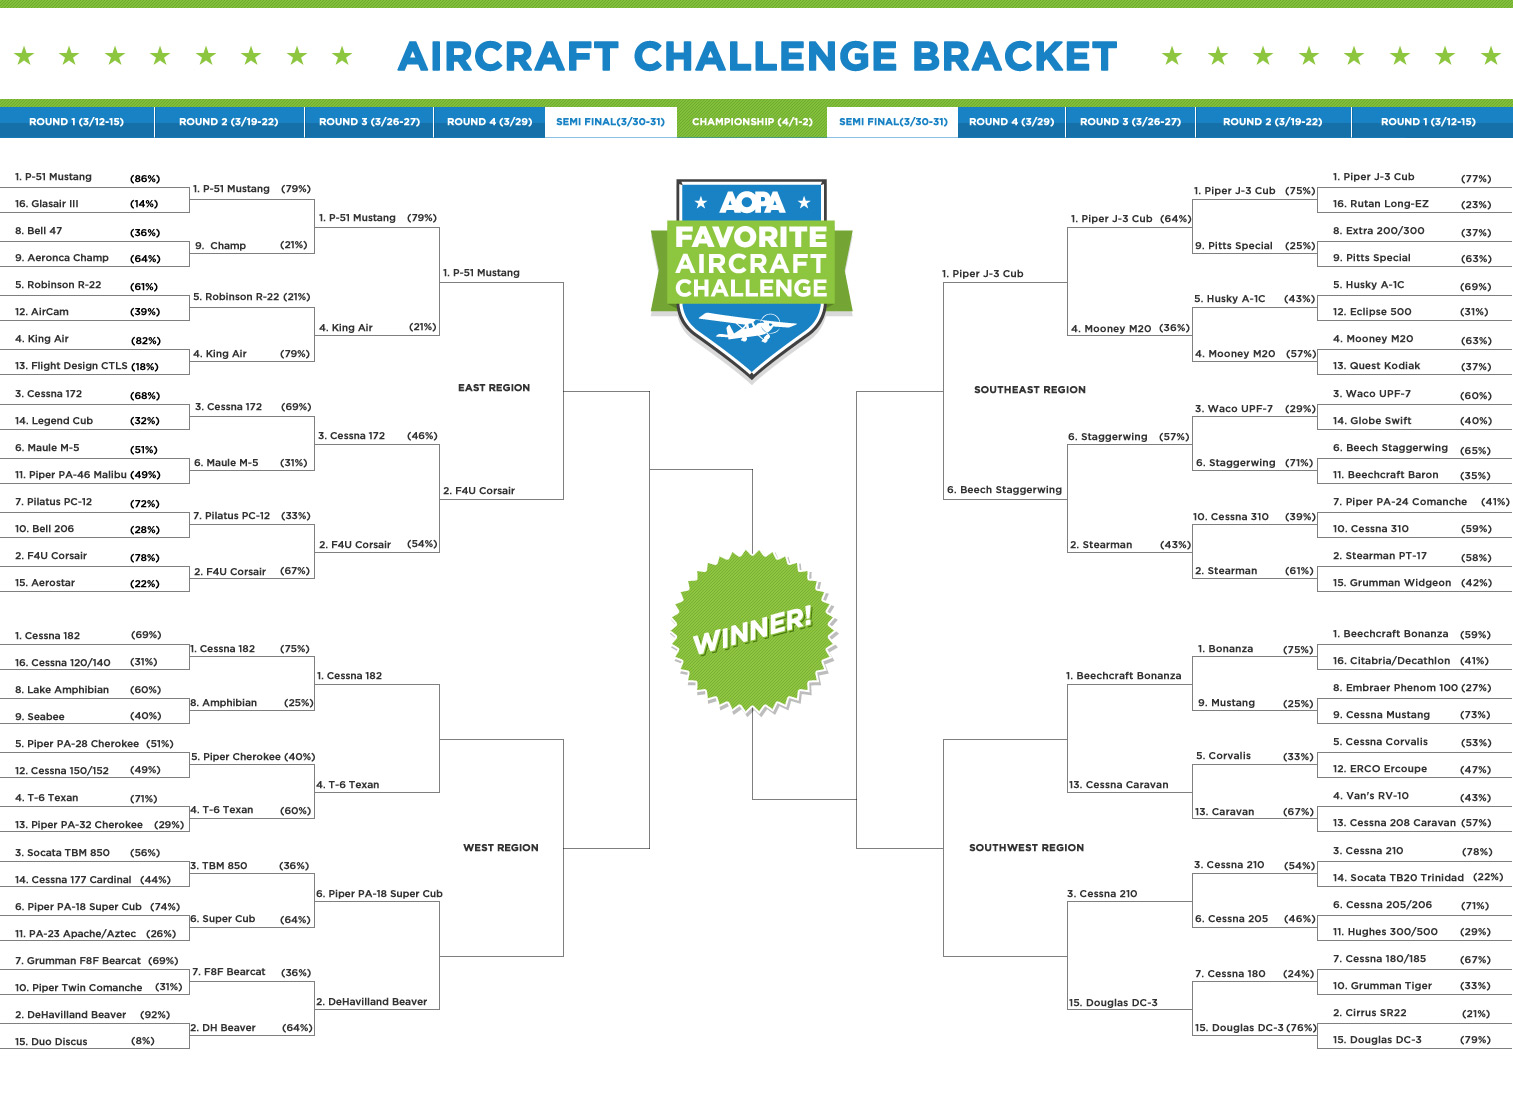 Aircraft Challenge Bracket - Third Round